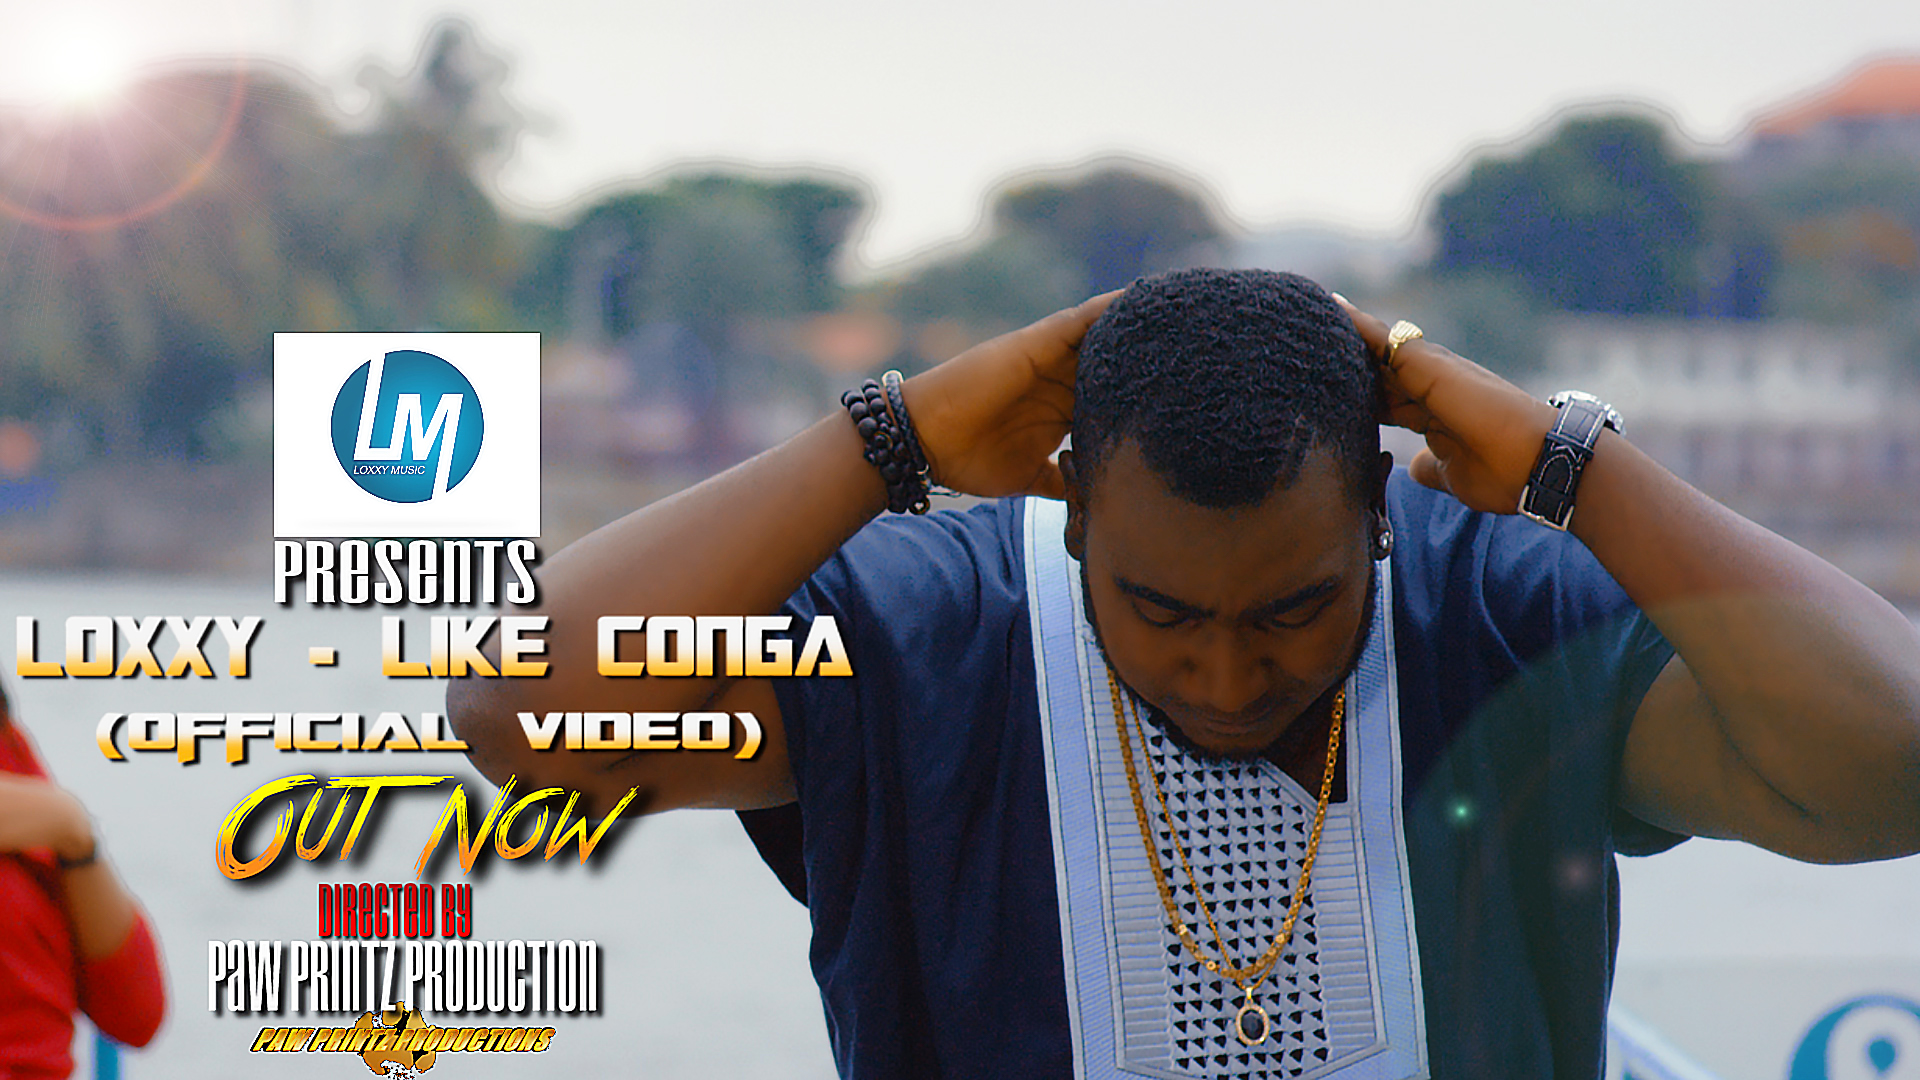 VIDEO: Loxxy - Like Conga